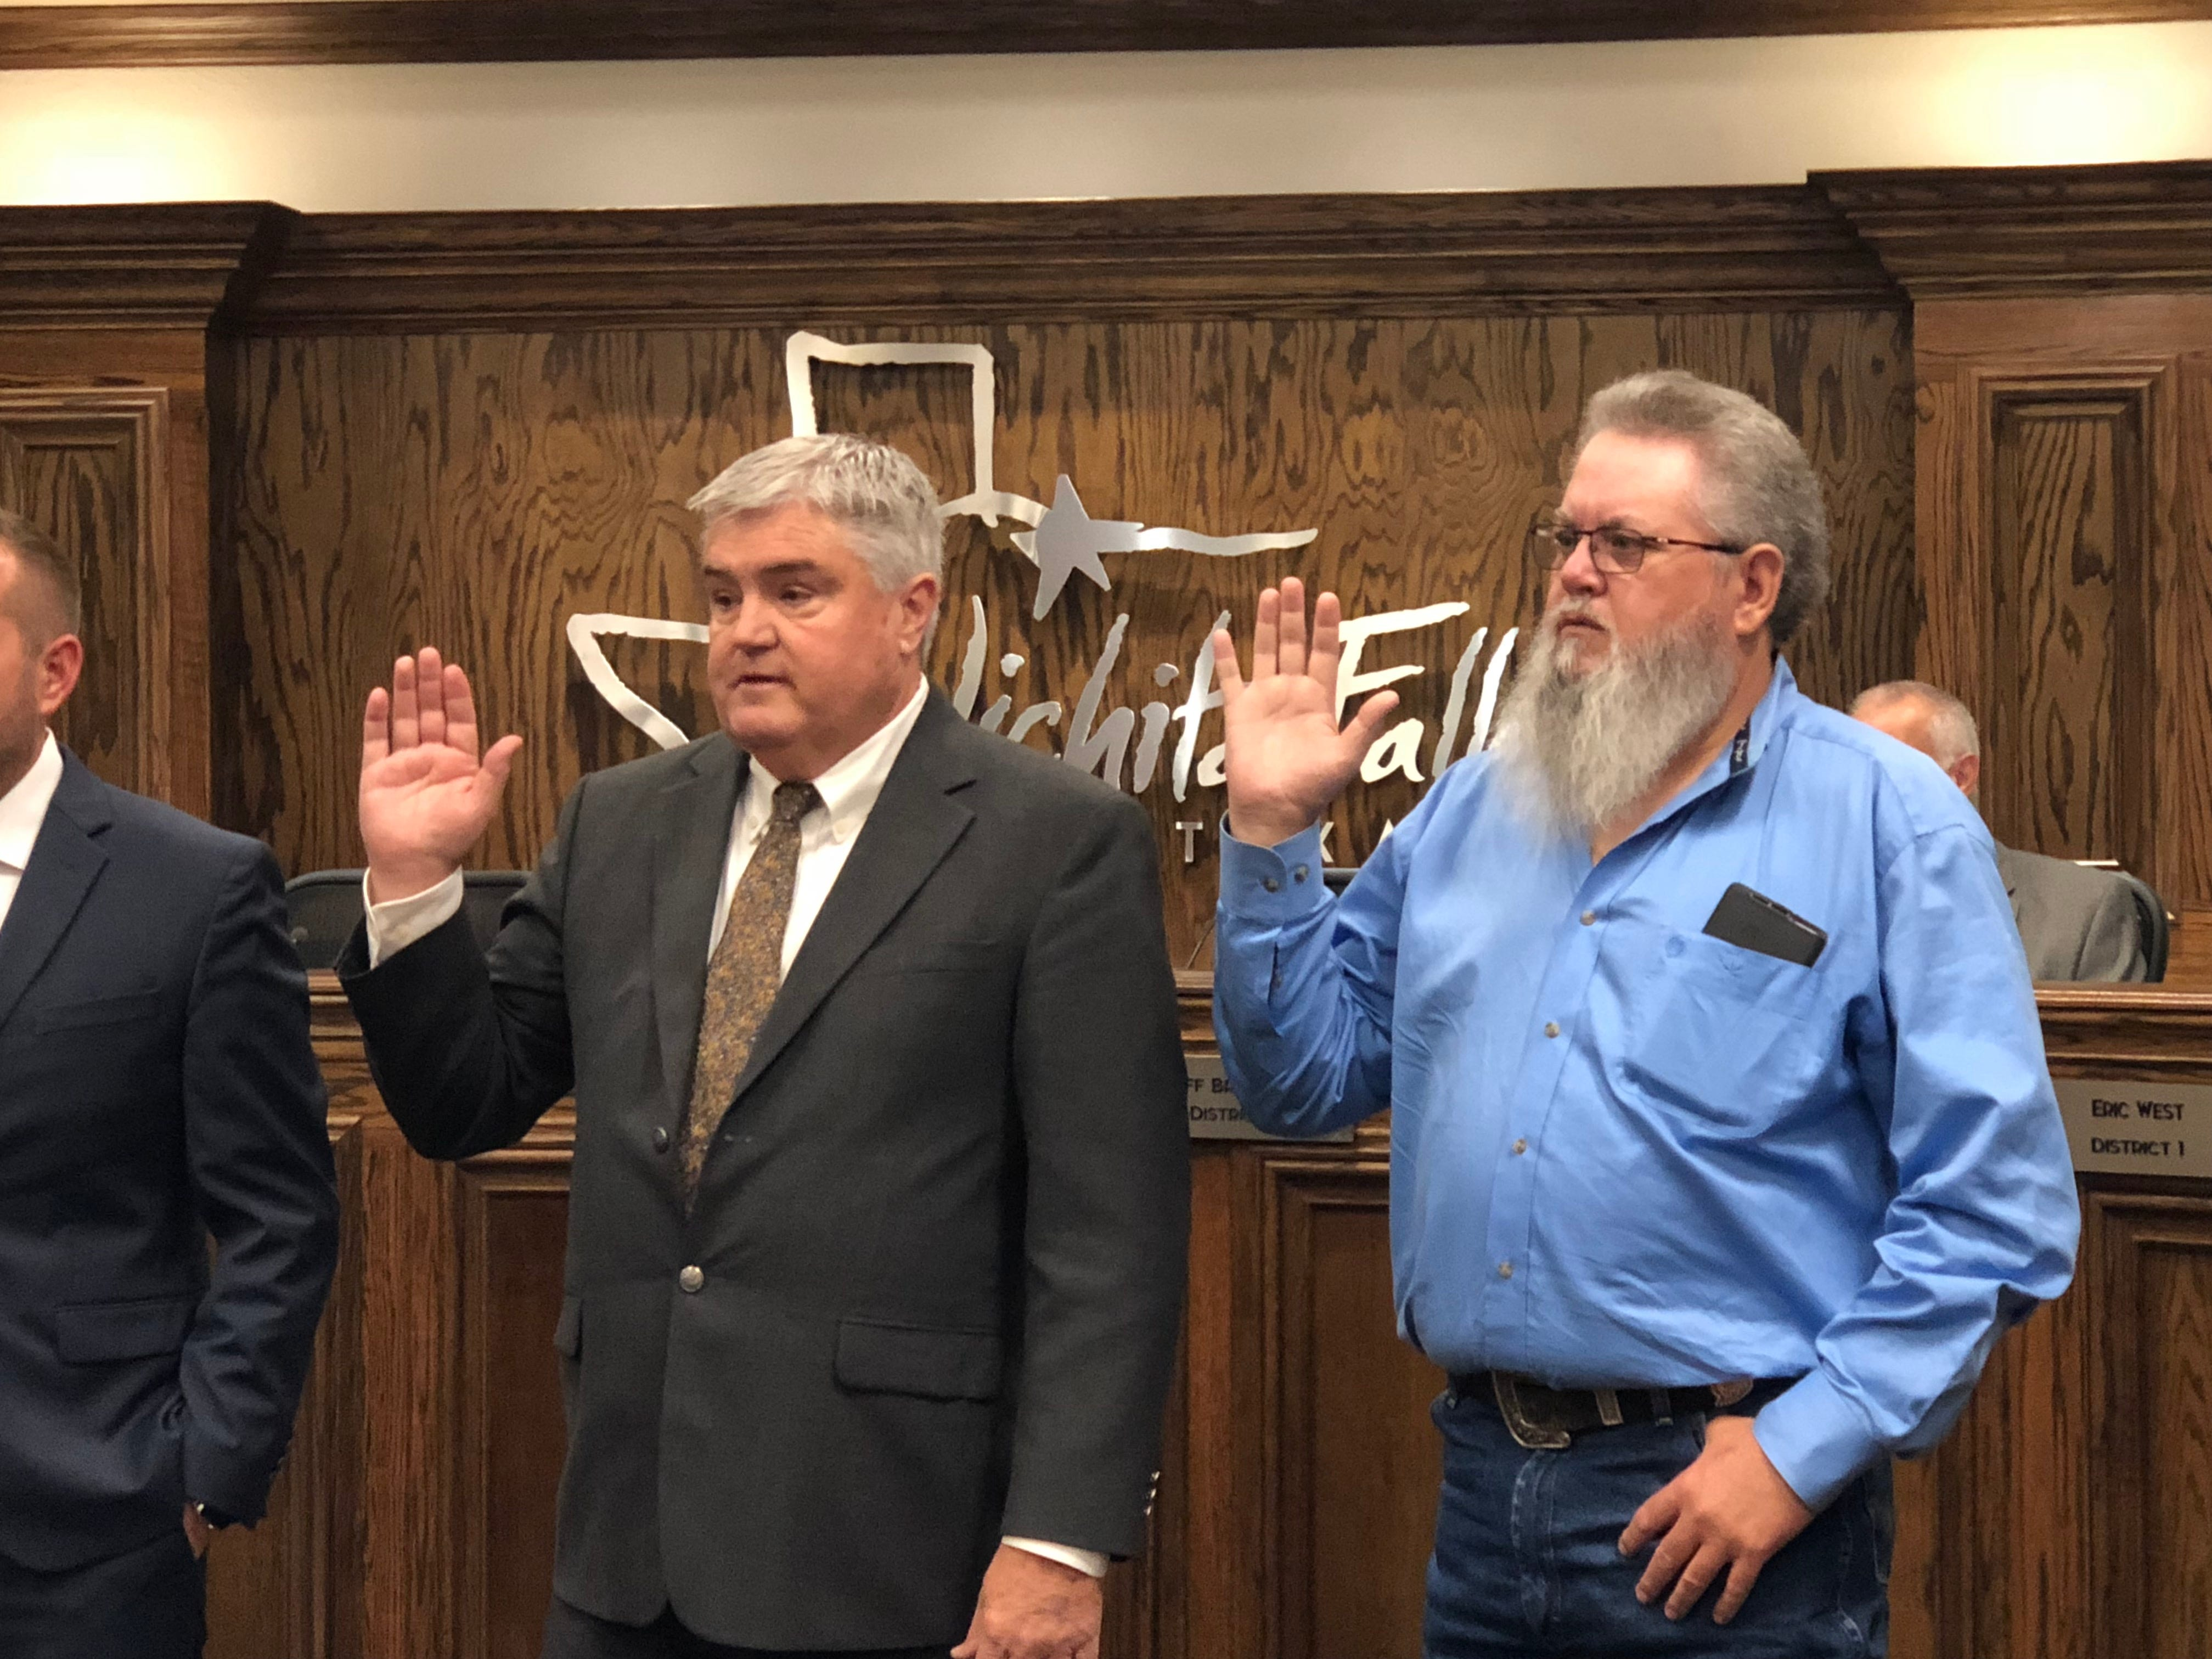 Newly elected councilors Tim Brewer, left, and Steve Jackson take the oath of office Tuesday.